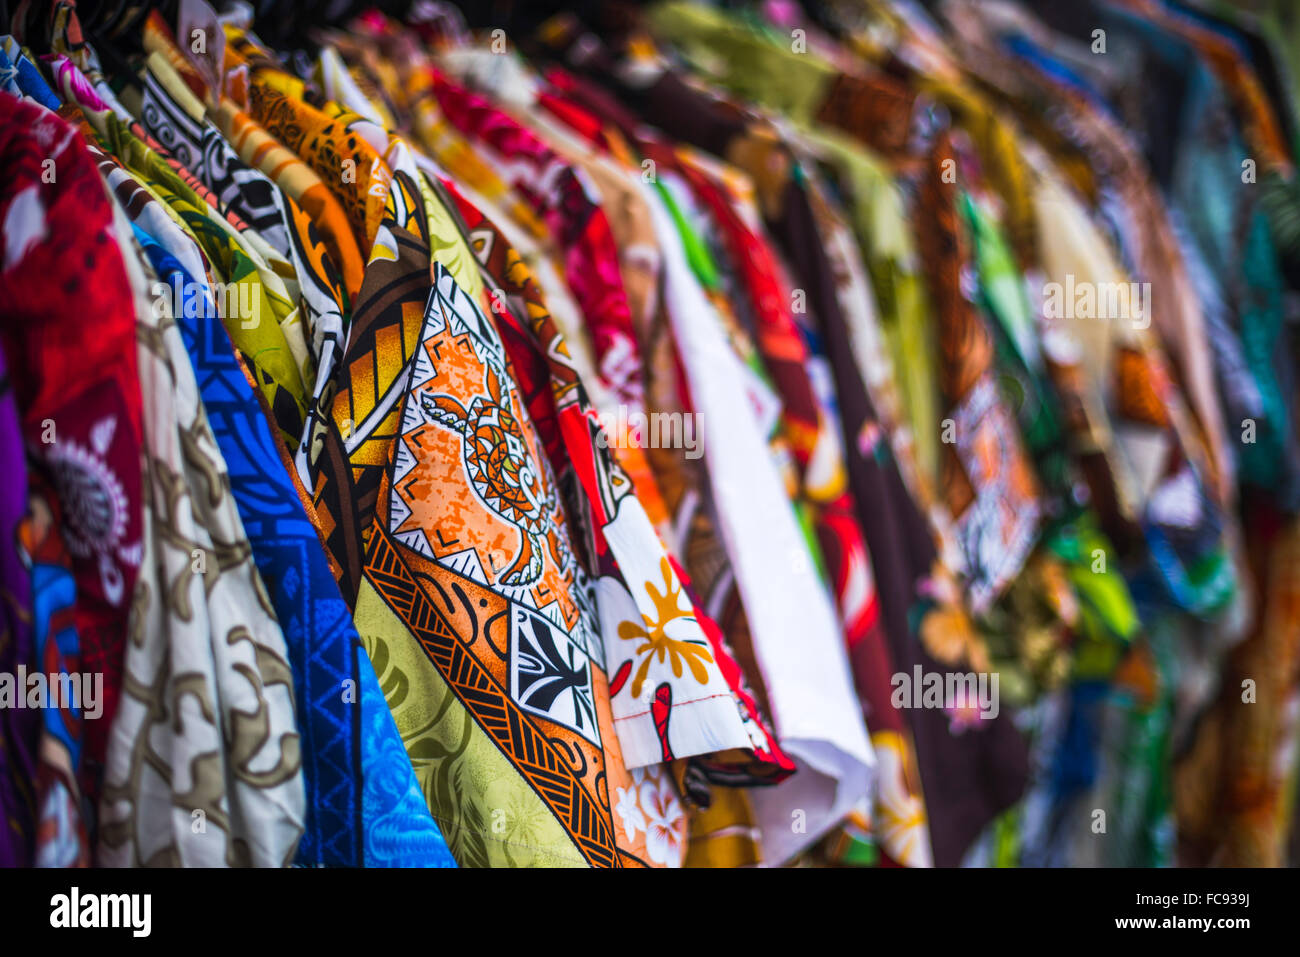 Hawaiian shirts for sale at Rarotonga Saturday Market (Punanga Nui Market), Avarua Town, Cook Islands, South Pacific, - Stock Image